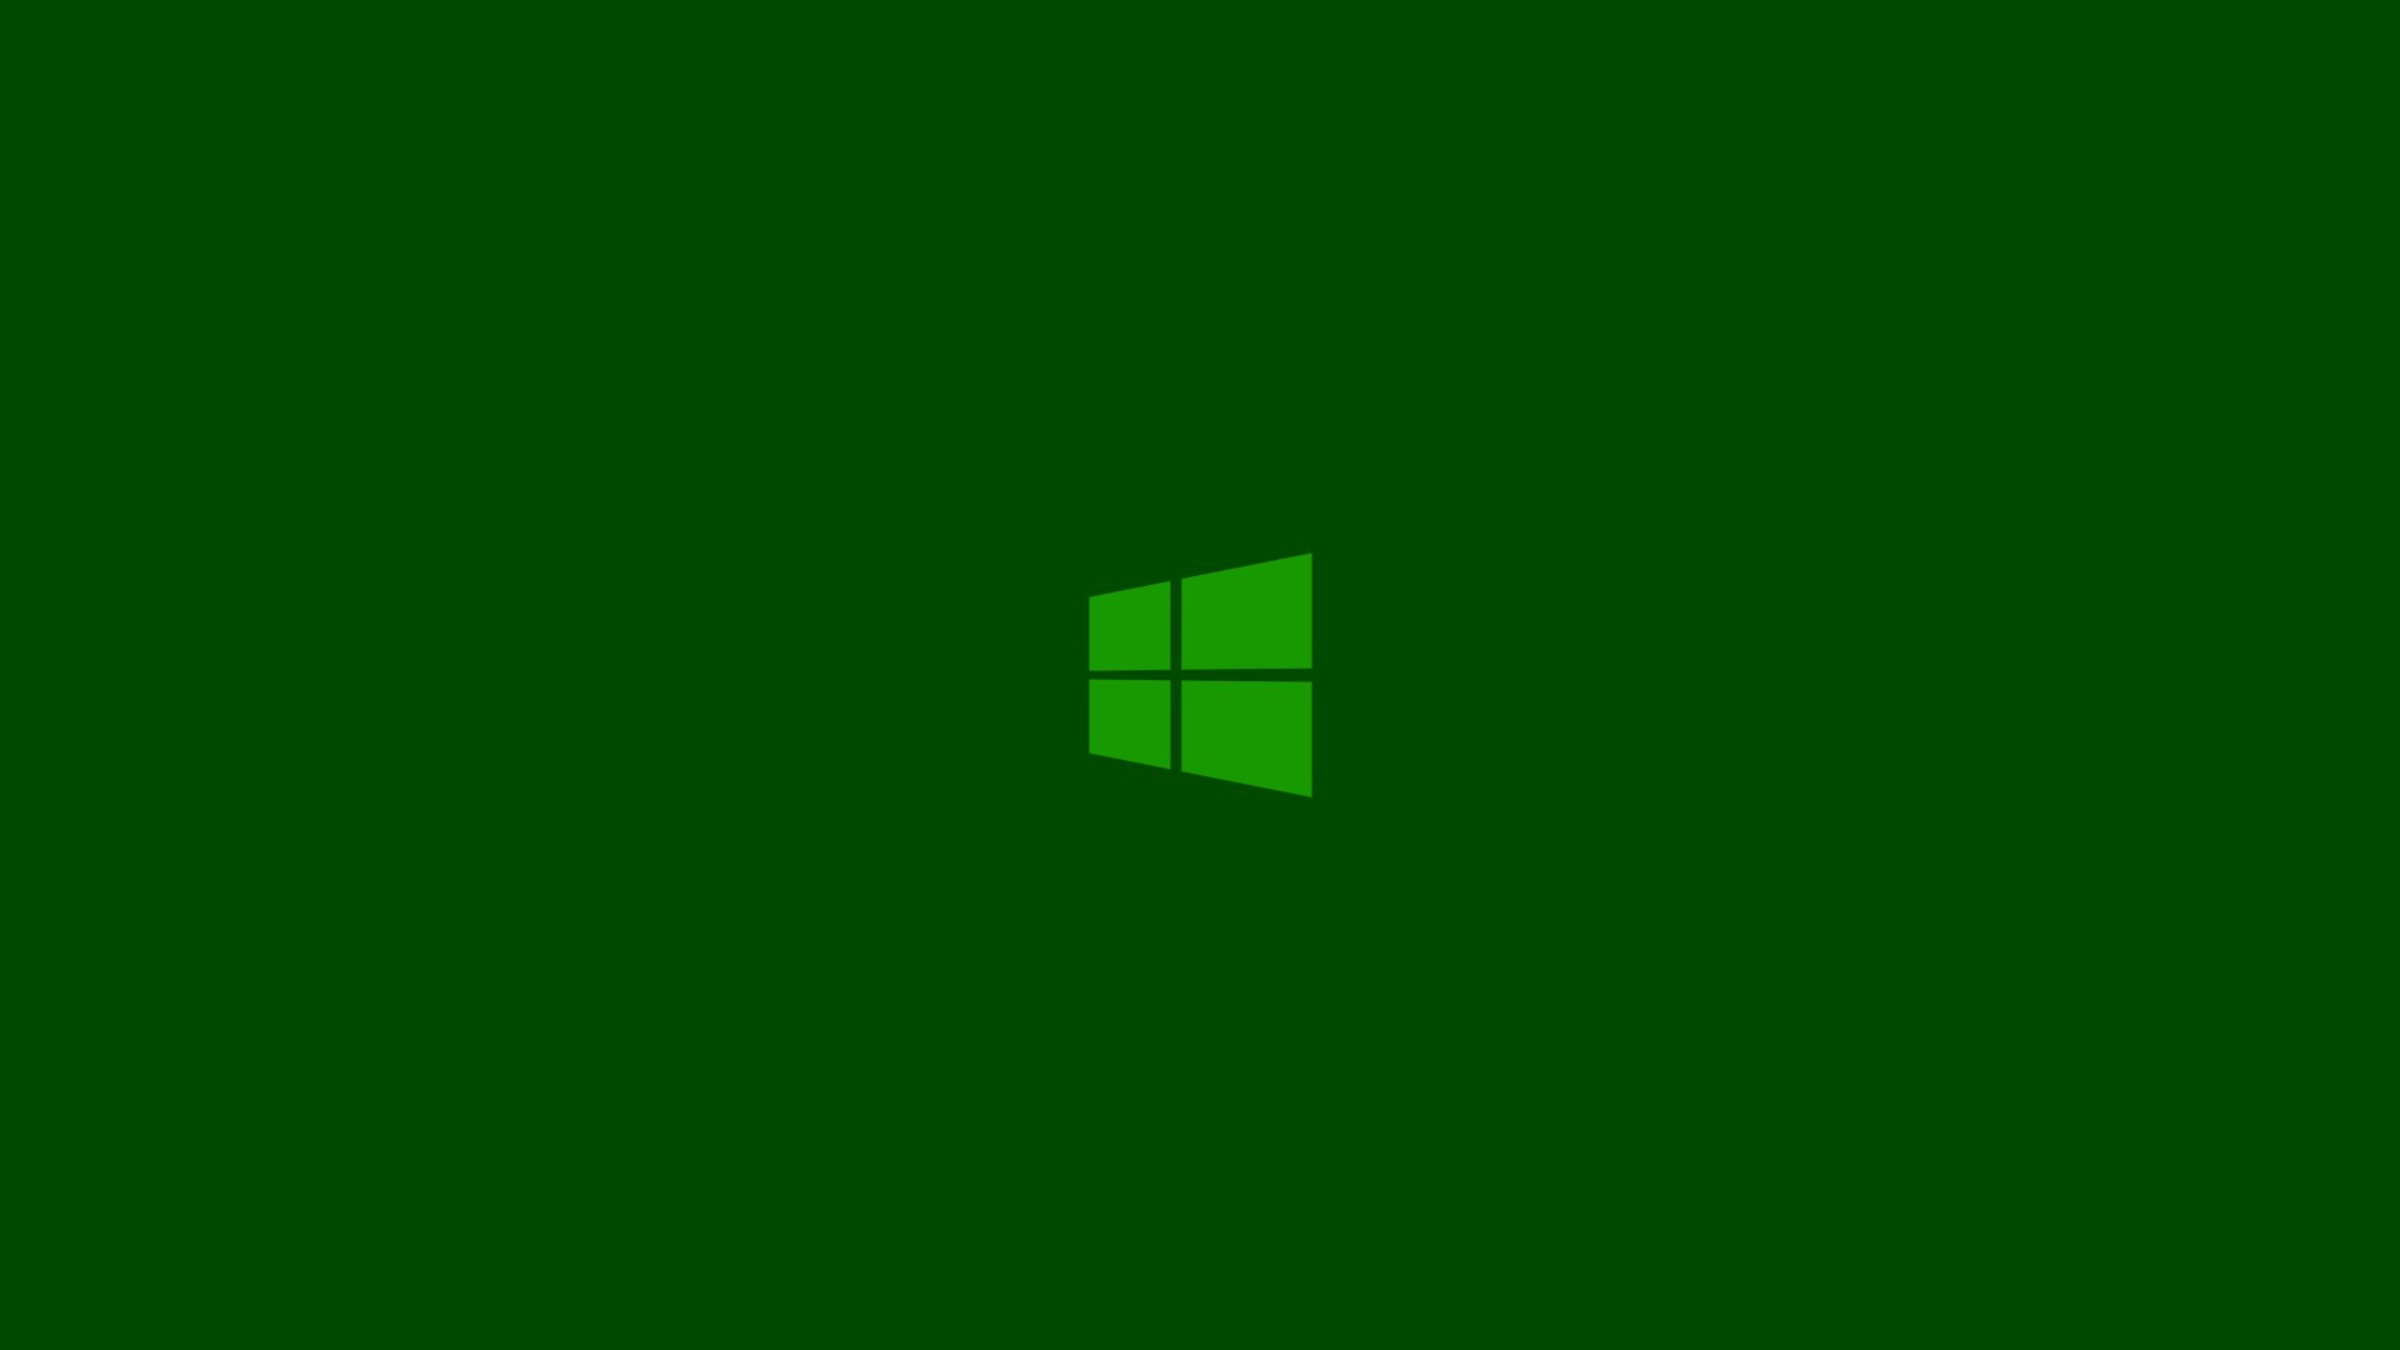 green-minimalistic-metro-windows-8-clean-logo-2400x1350-wallpaper